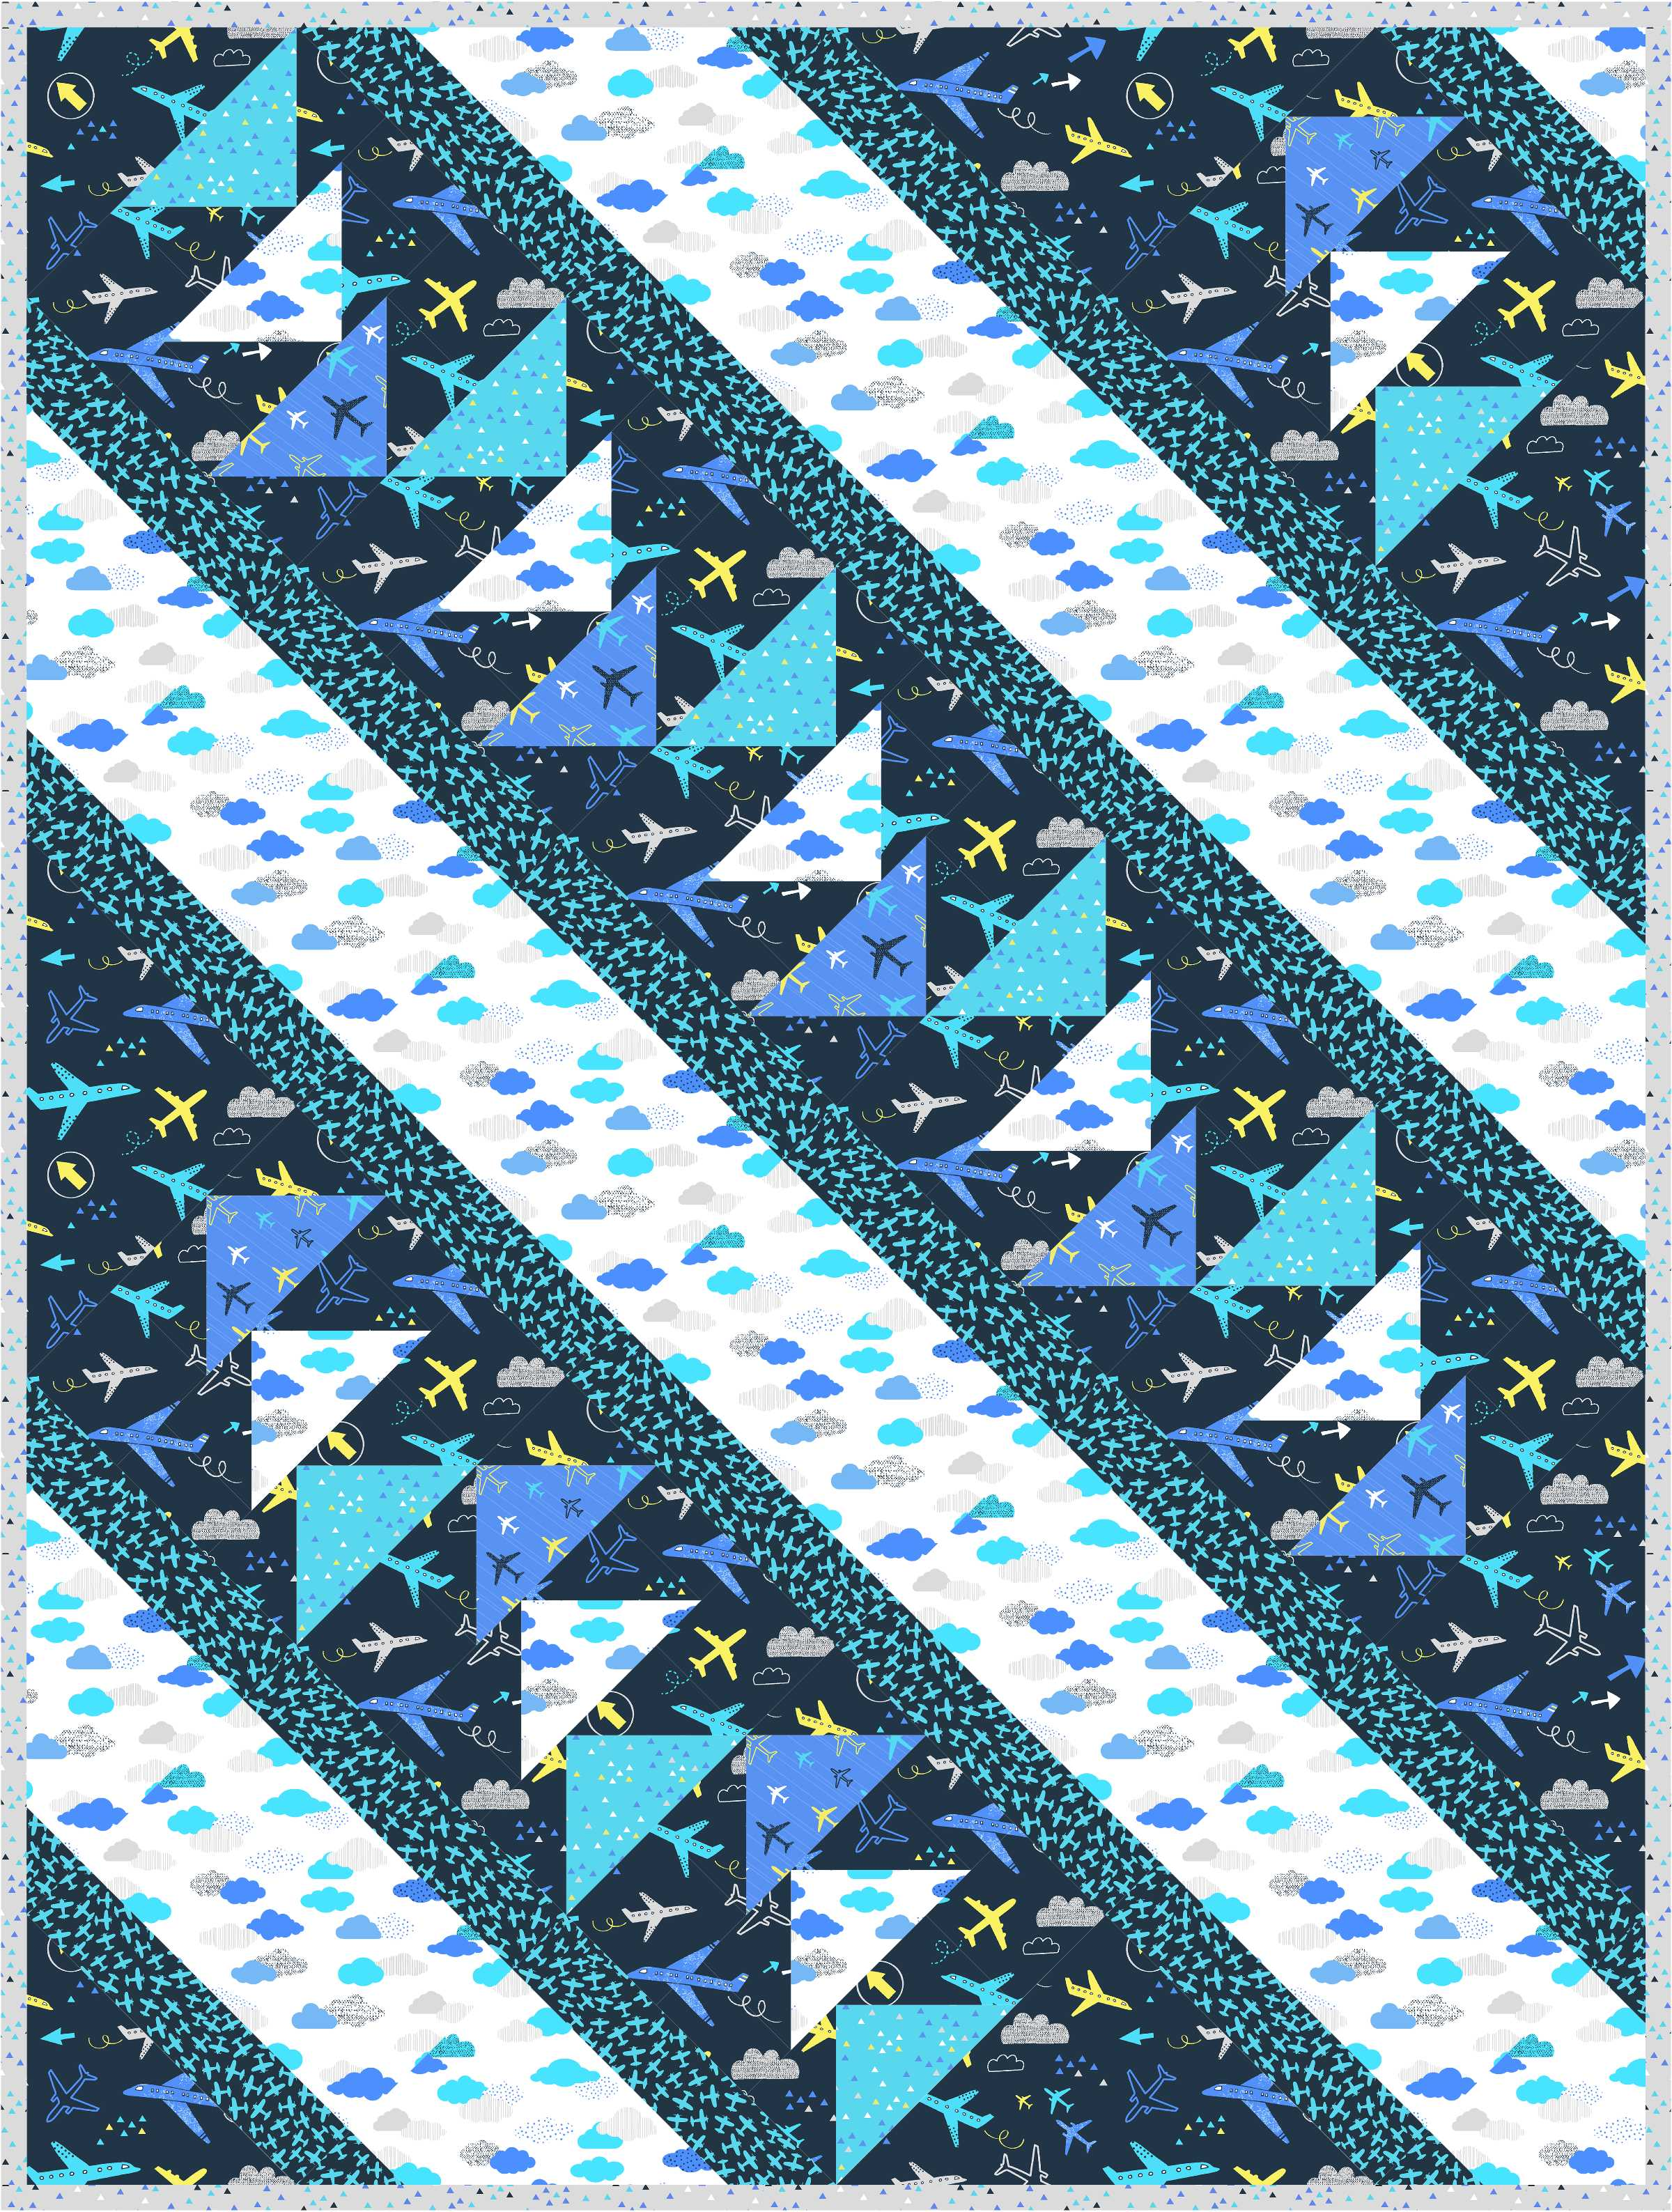 Flight Pattern, featuring the Take Flight collection for Dear Stella